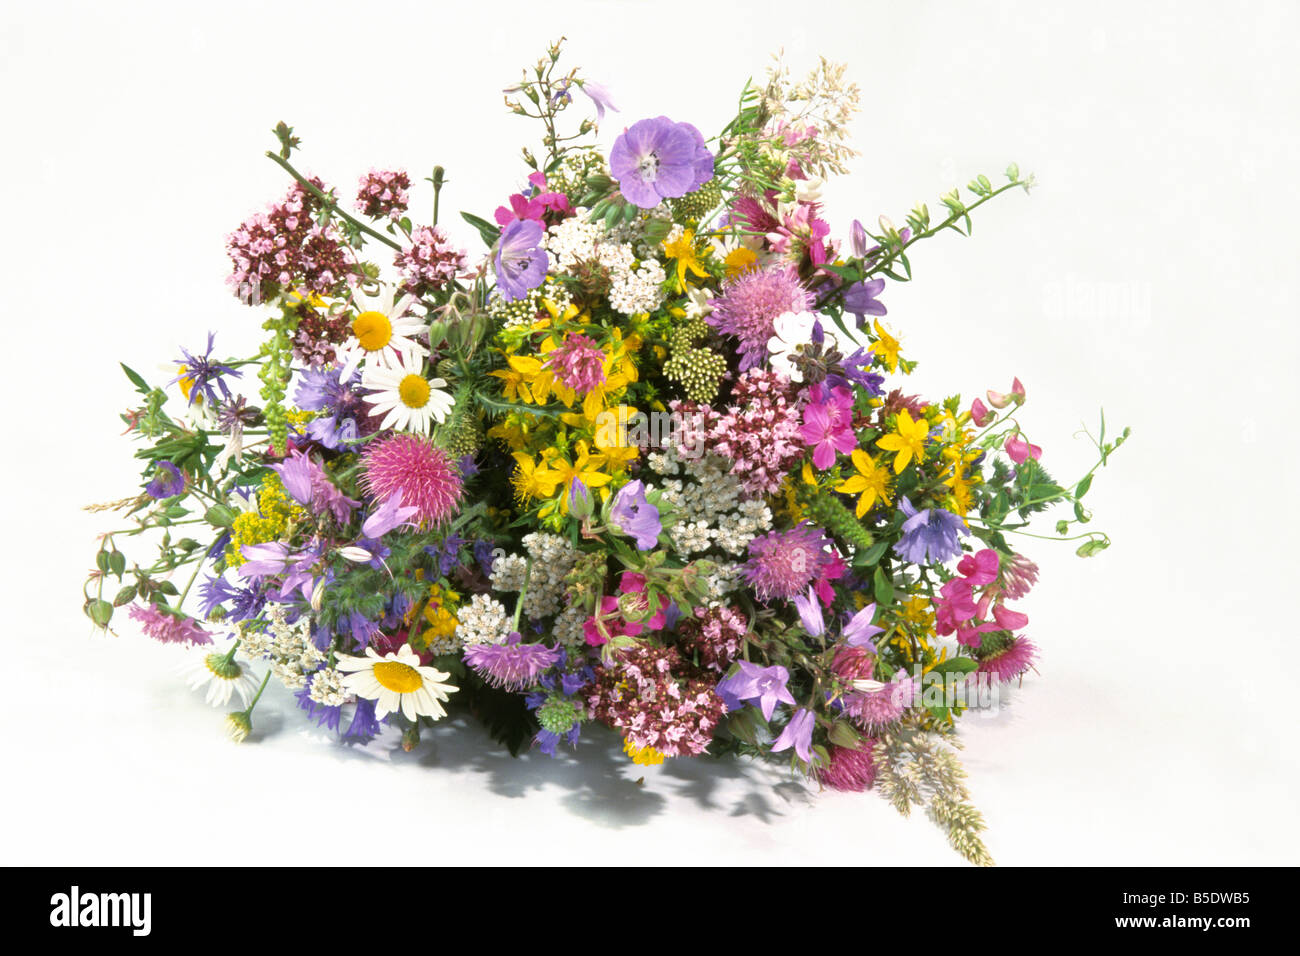 Bouquet wild flowers studio picture stock photos bouquet wild bouquet of wild flowers studio picture stock image izmirmasajfo